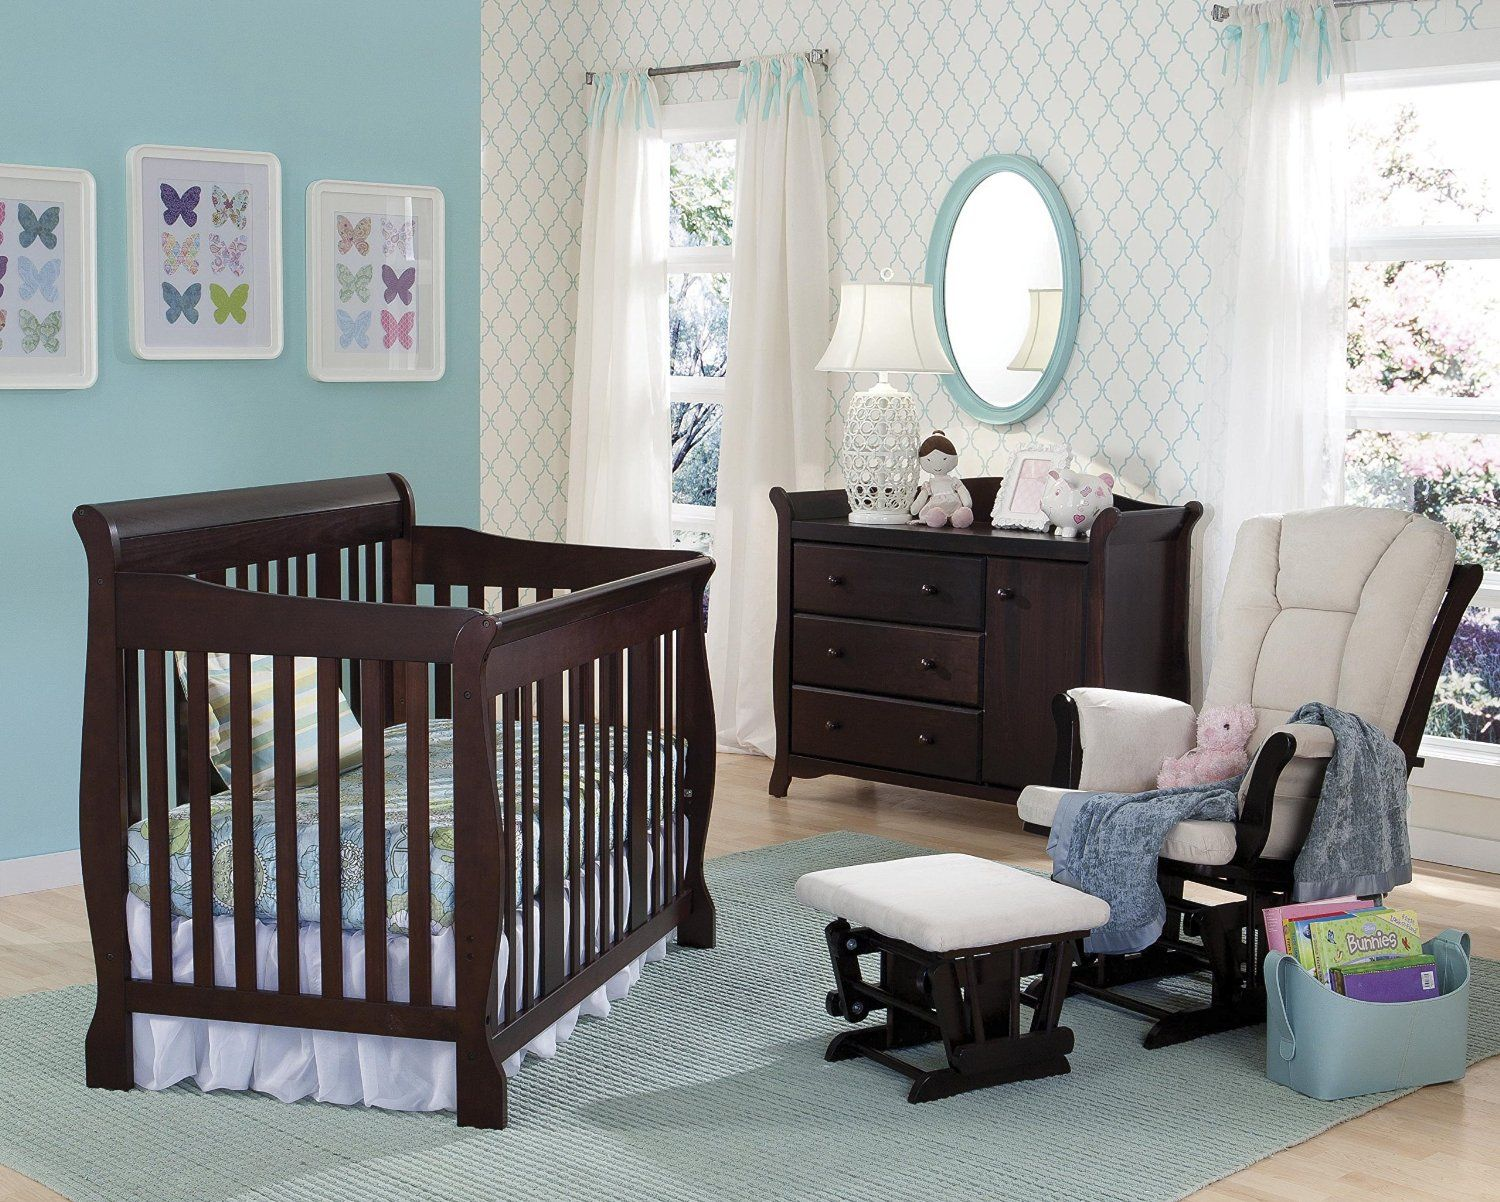 The Stork Craft Tuscany 4 In 1 Convertible Crib Handles Most Tasks You Throw